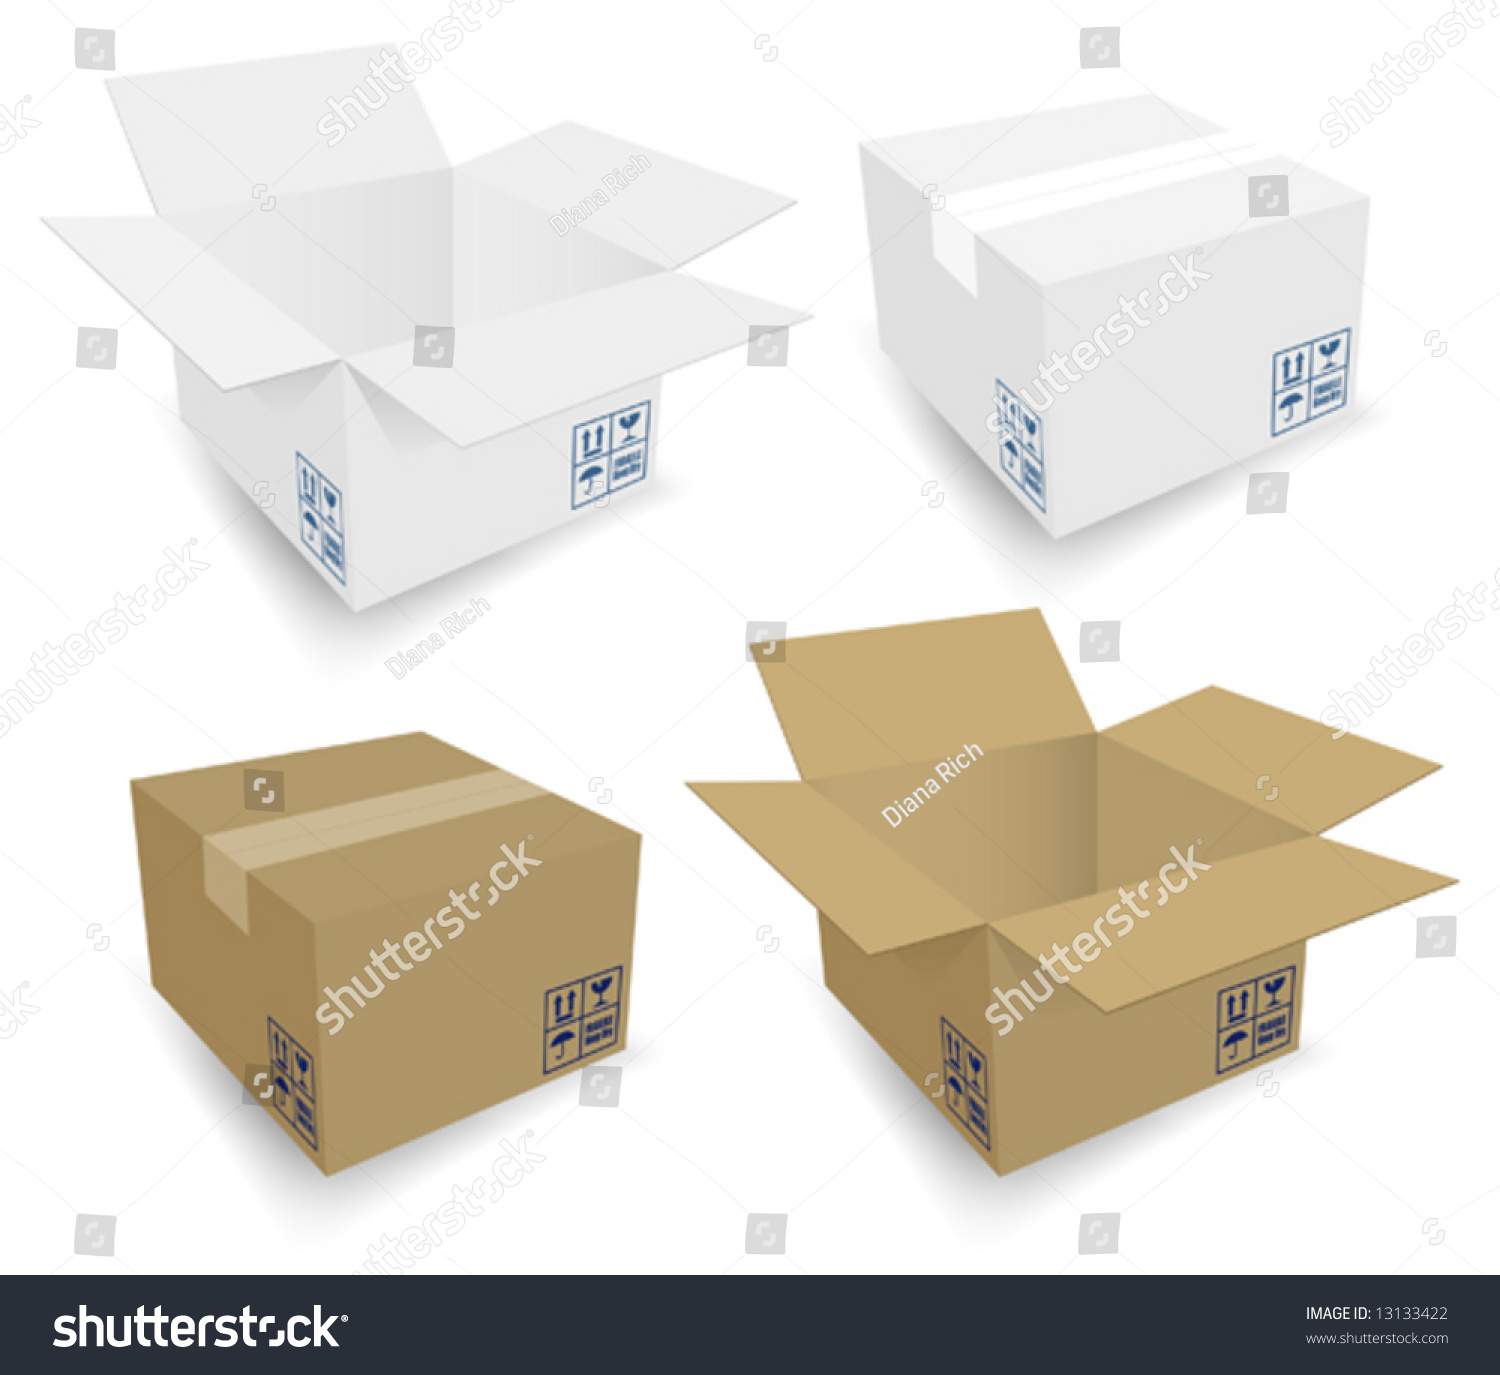 Cardboard Boxes Icons Open & Closed. Same Box, White And ...